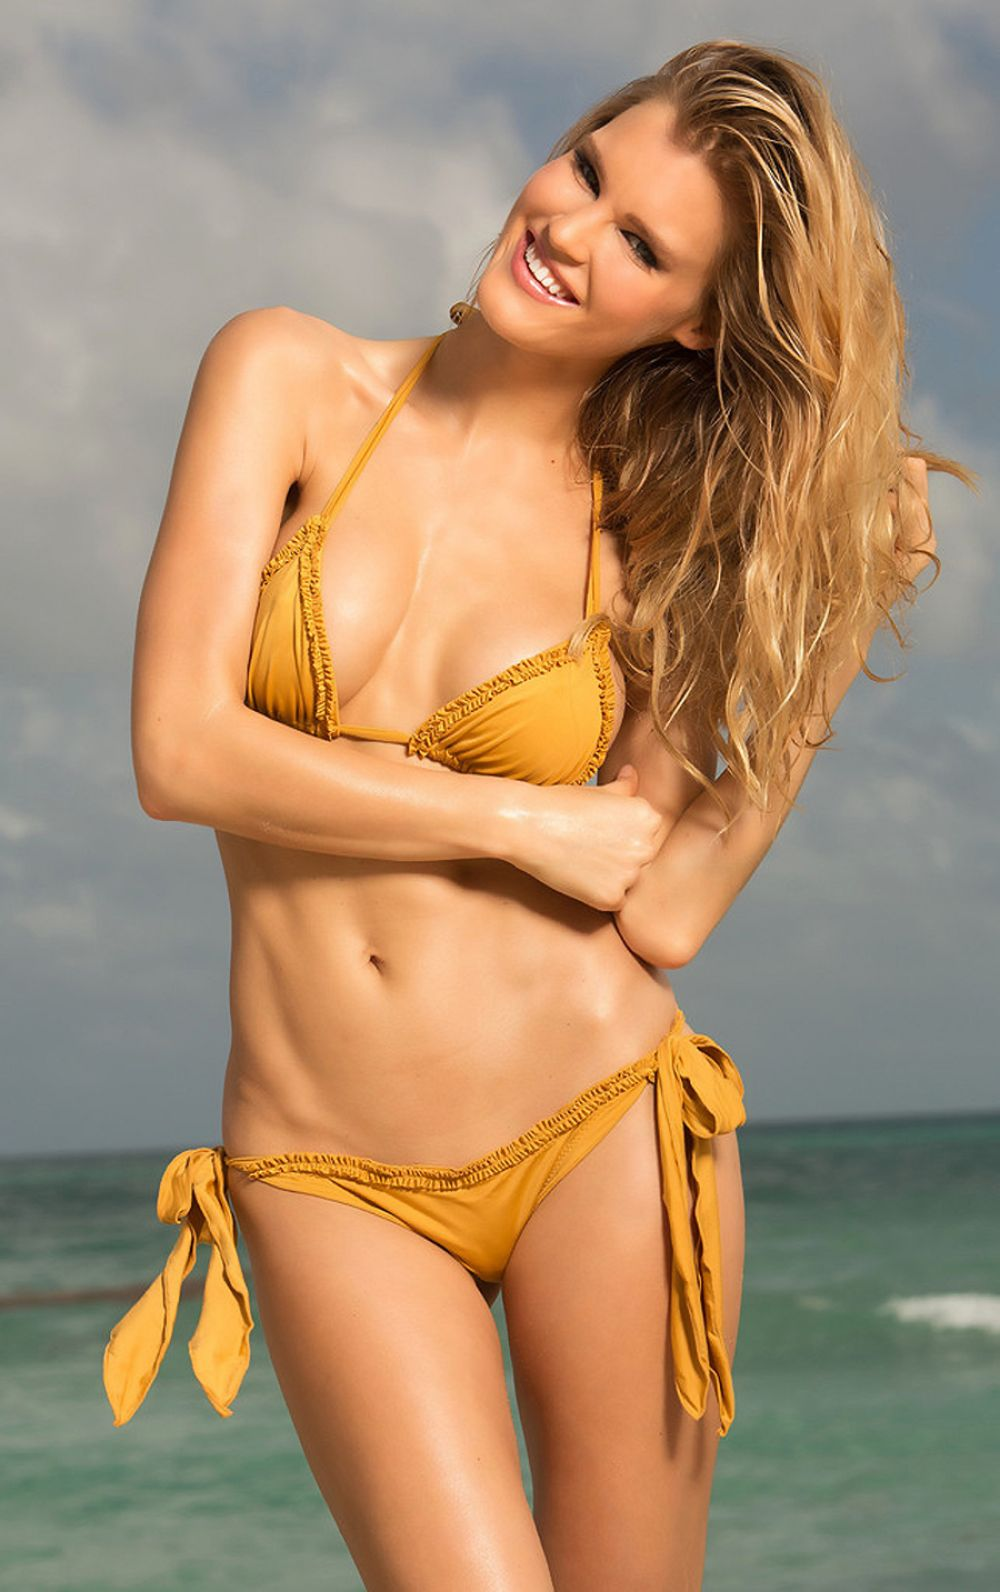 joy-corringan-summerlove-swimwear-2014-collection_28.jpg - 147.56 KB